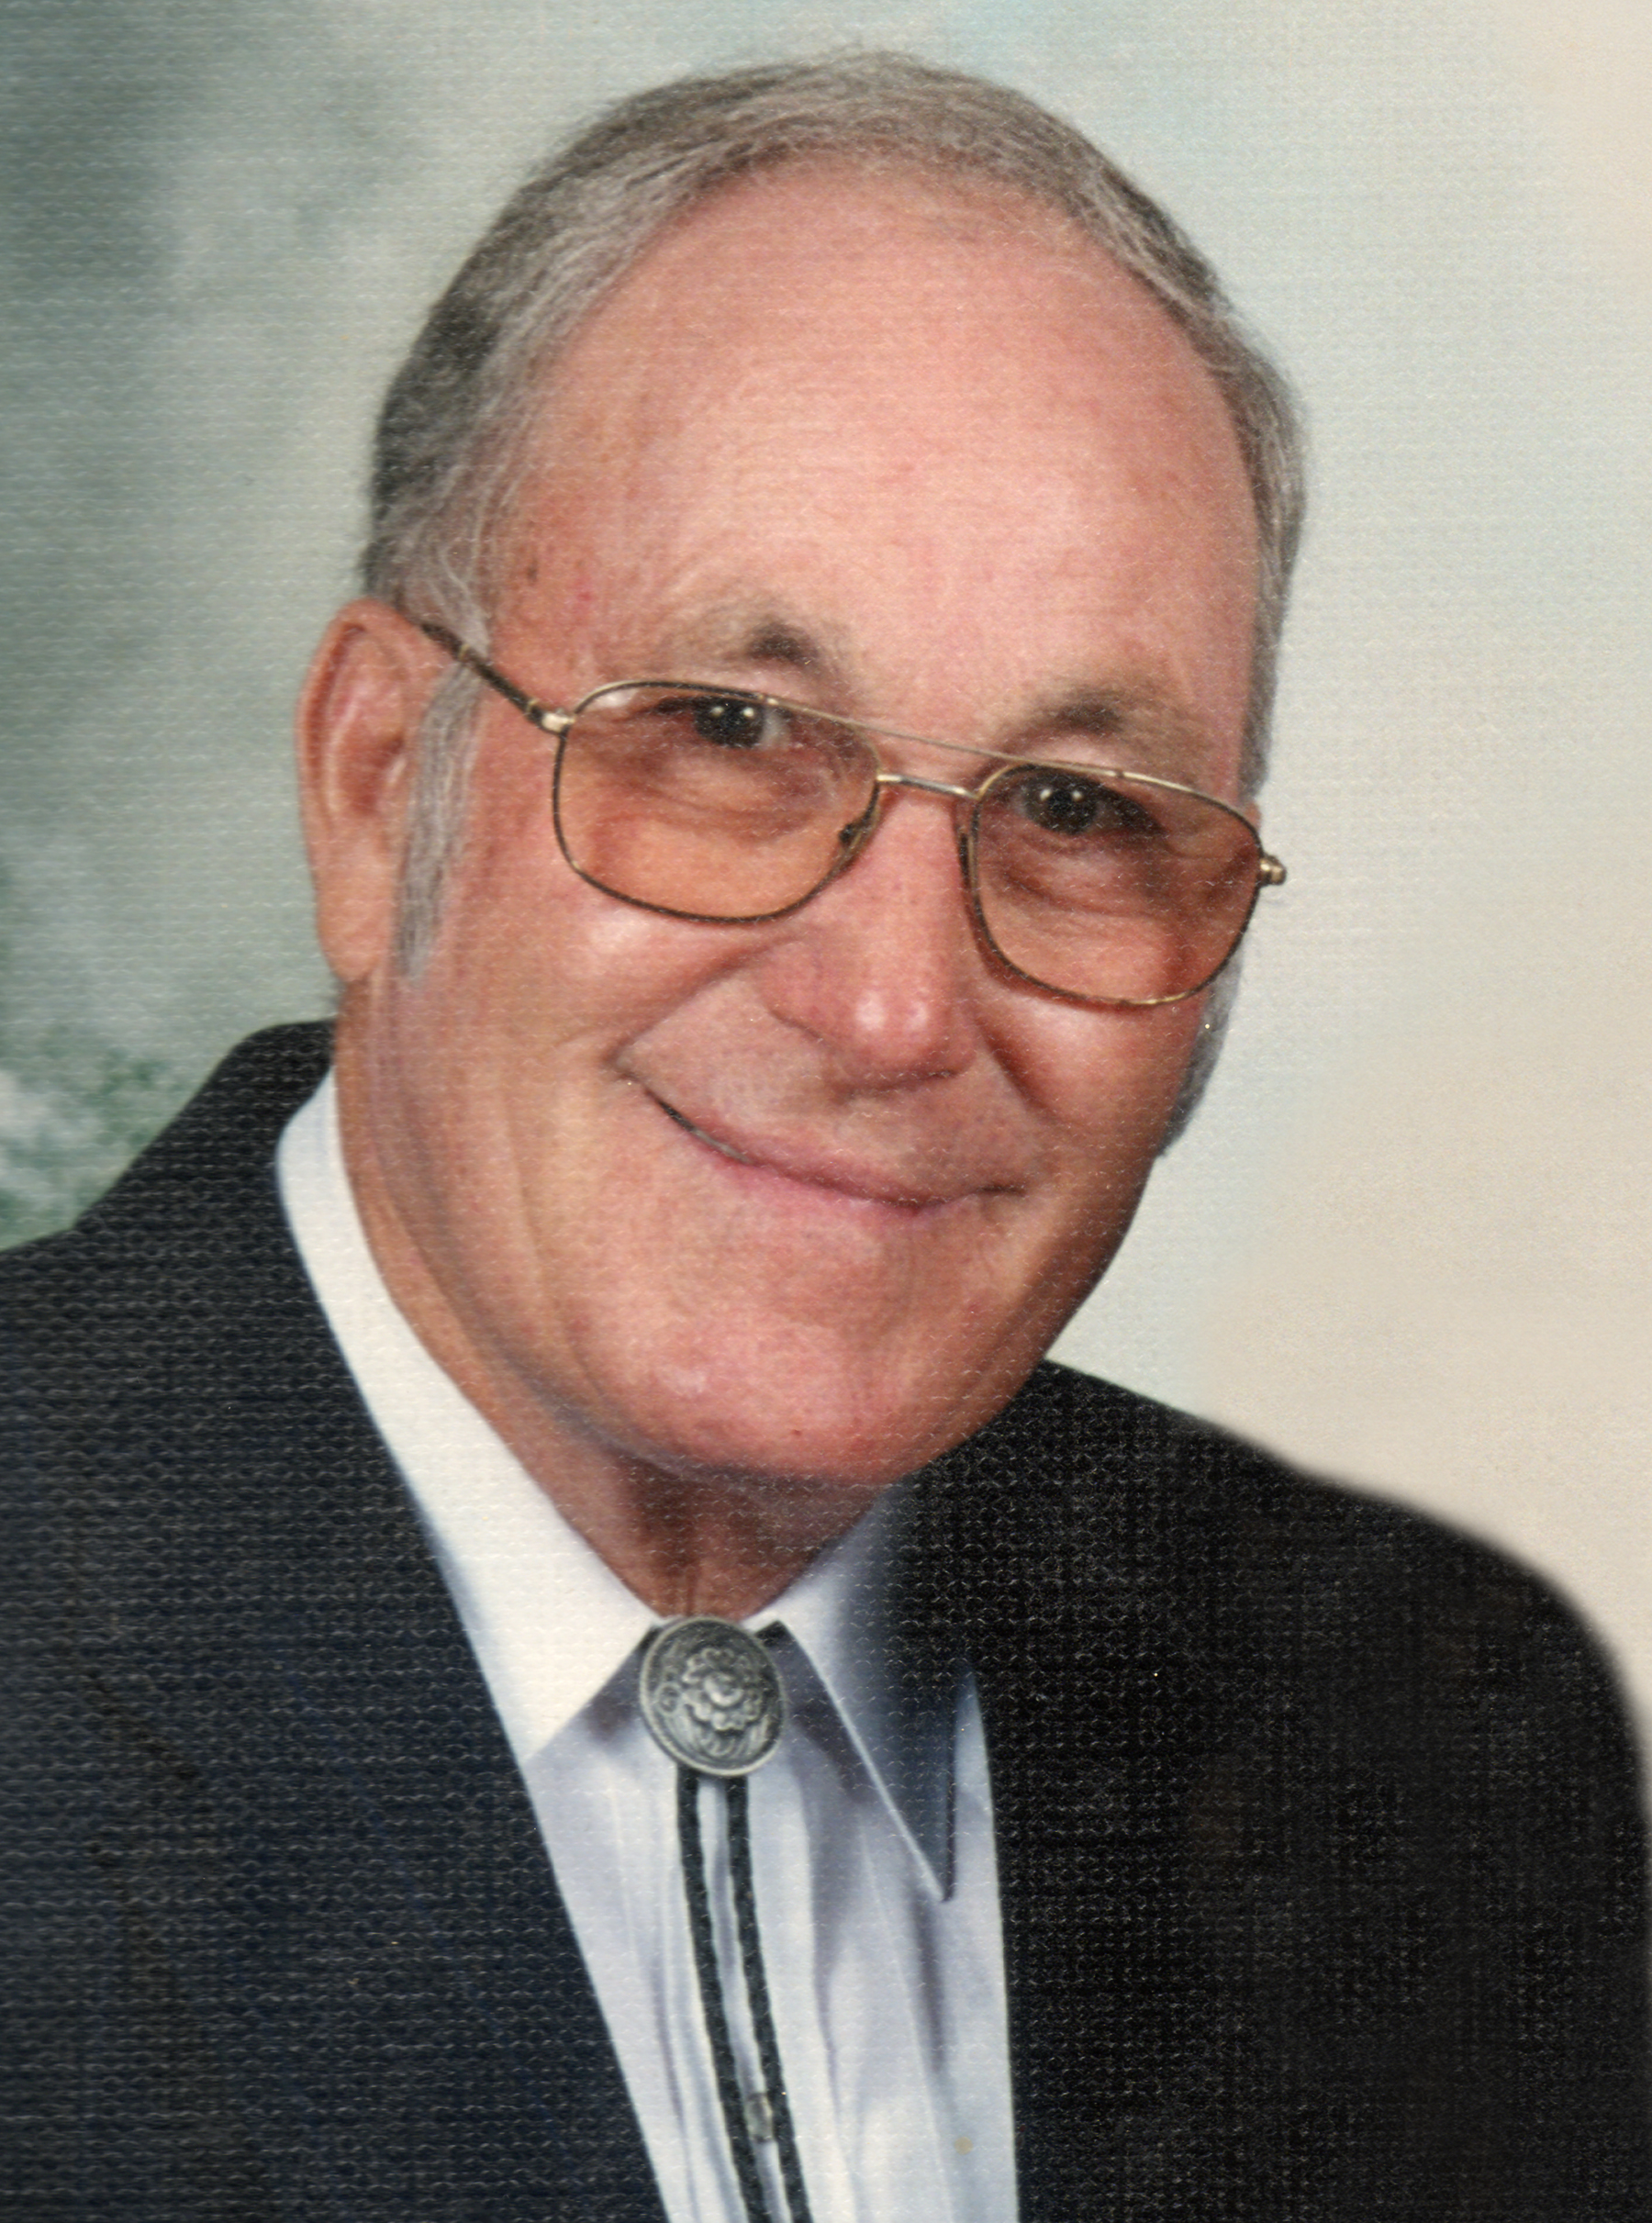 Kenneth Ray Pike, age 74, of Elkhorn died there on Sunday, April 6